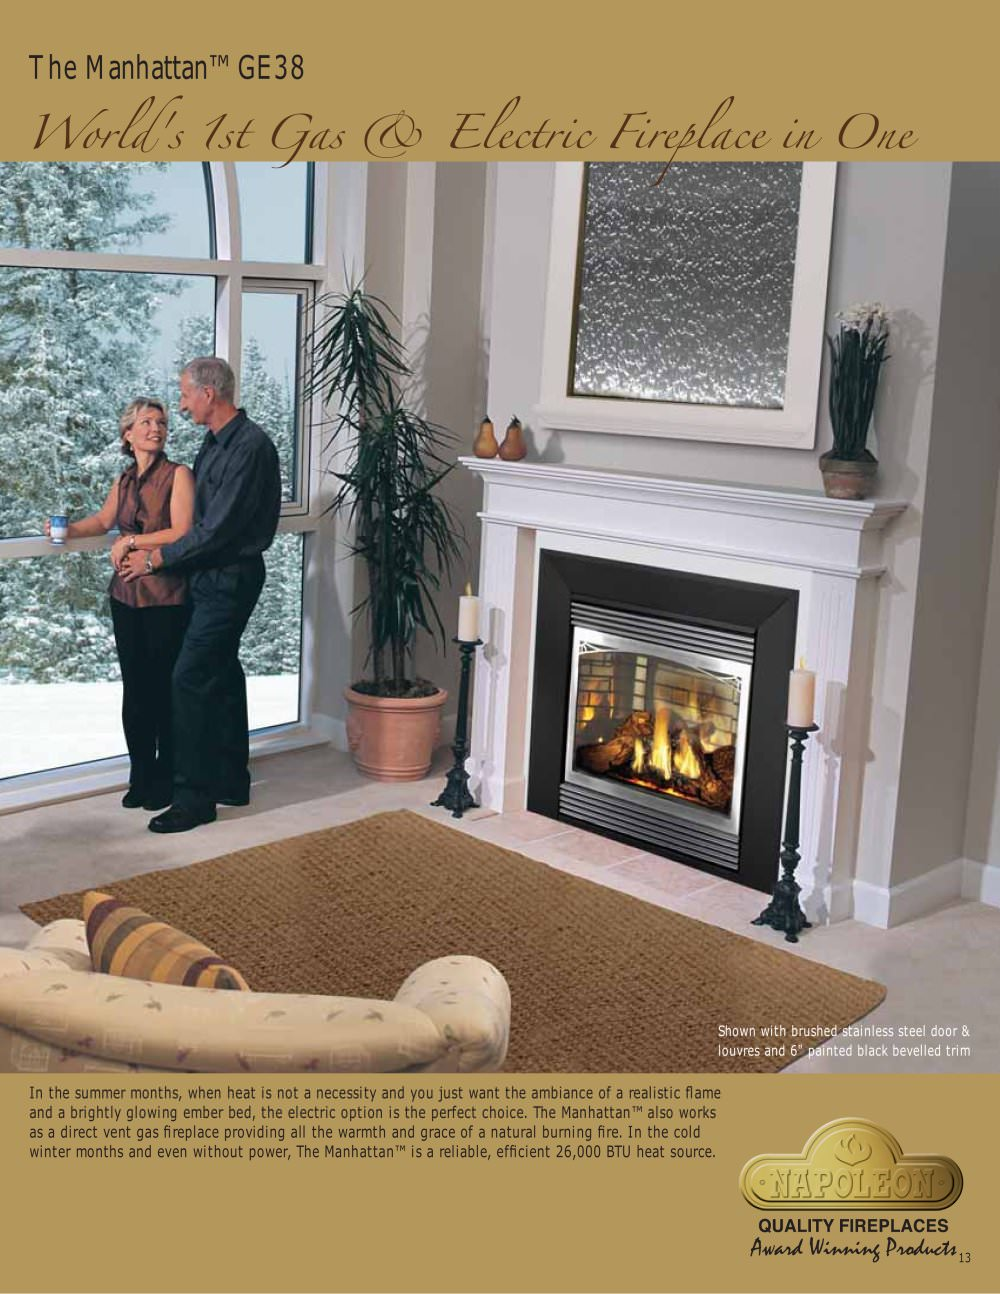 SAVE MONEY – TURN OFF GAS FIREPLACE PILOT